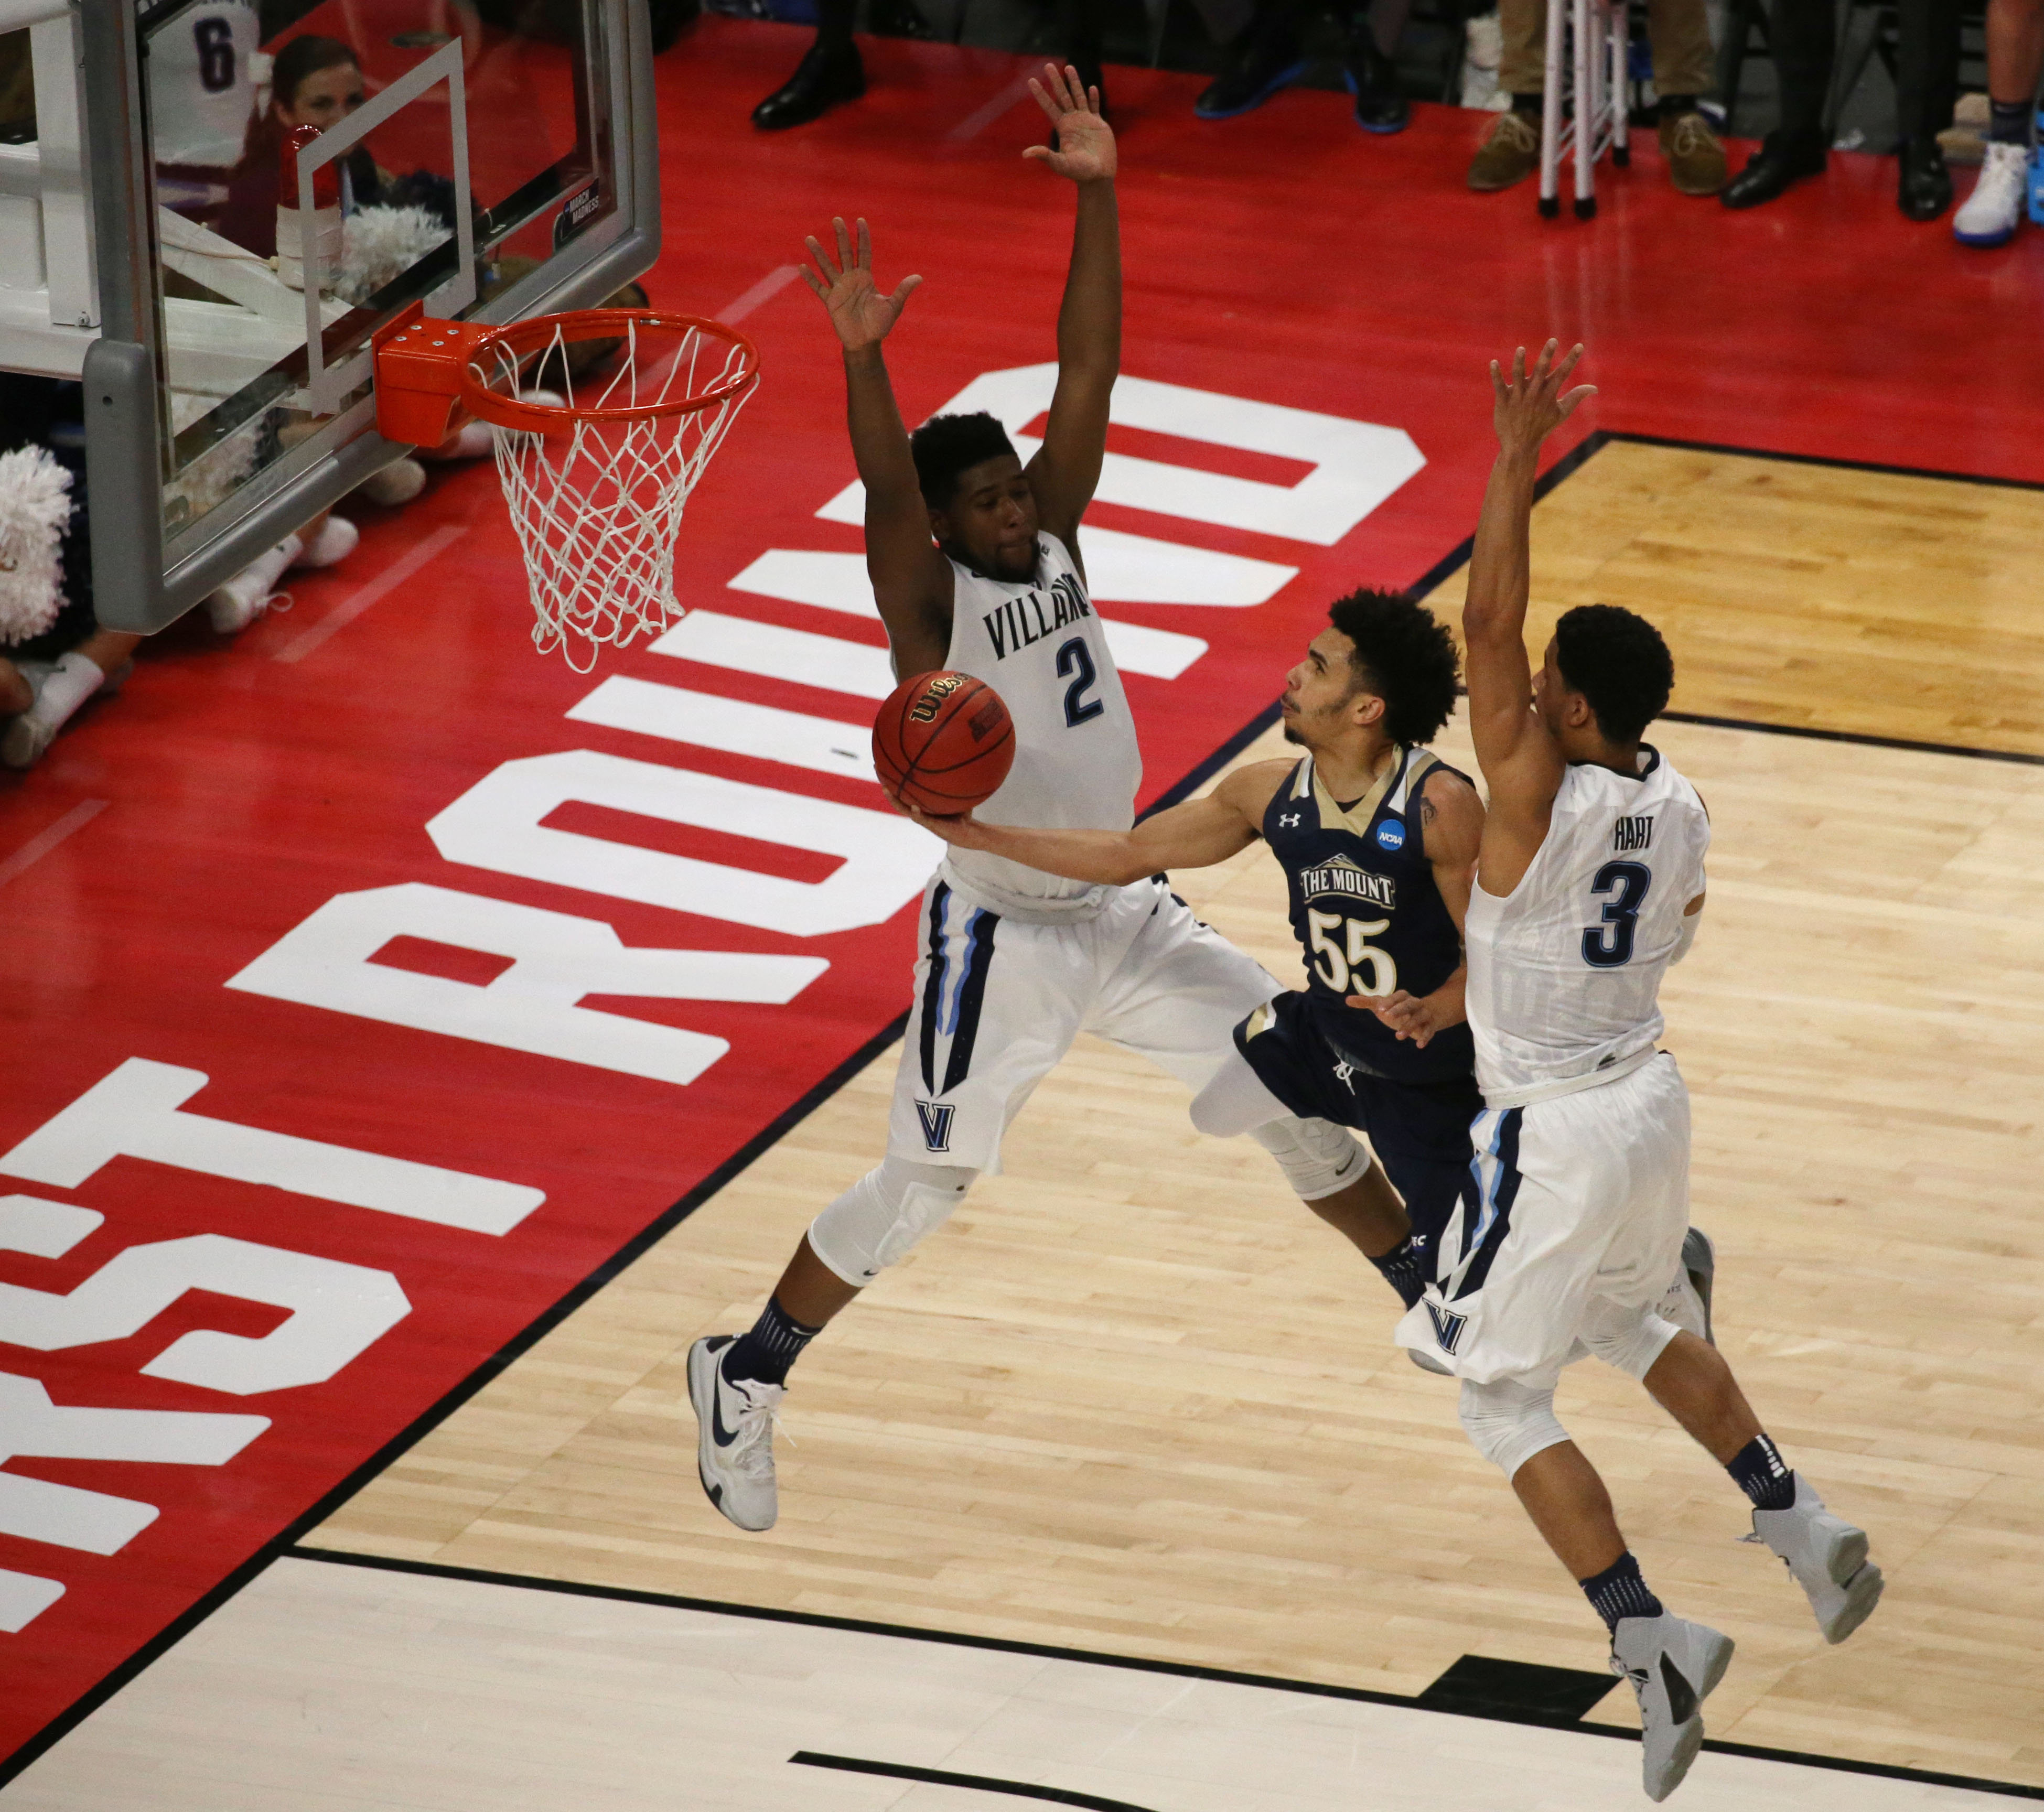 Mount St. Mary's guard Elijah Long (55) drives to the basket against Villanov's Kris Jenkins (2) and Josh Hart (3) during the first half of the NCAA Tournament opening round game at the KeyBank Center, Thursday, March 16, 2017.  (Derek Gee/Buffalo News)